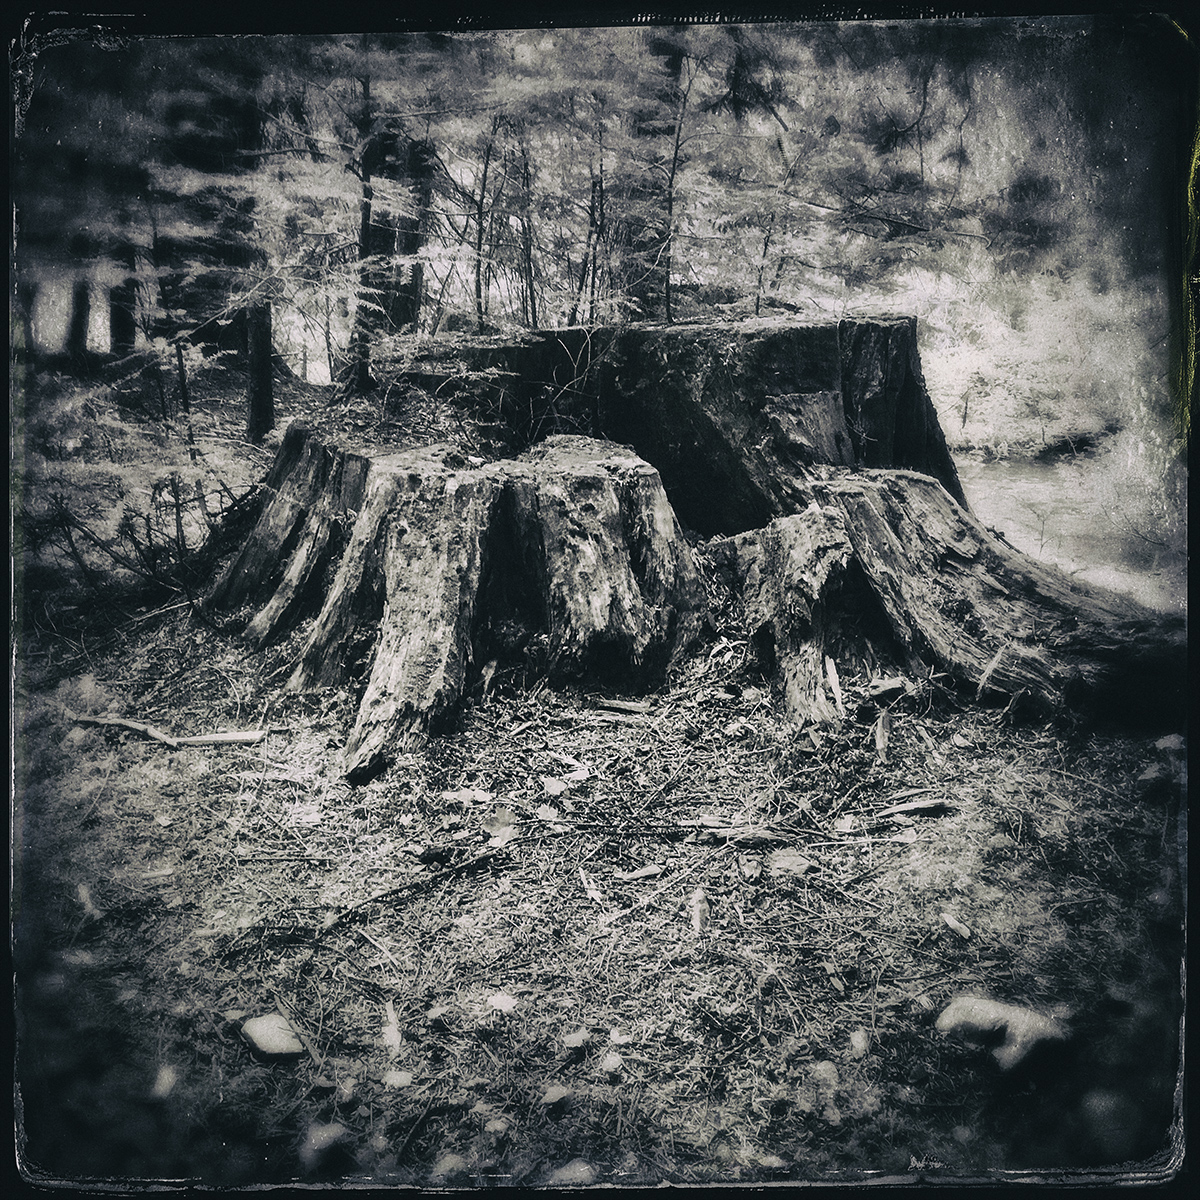 Forest of Lost Trees 17 72dpi.jpg